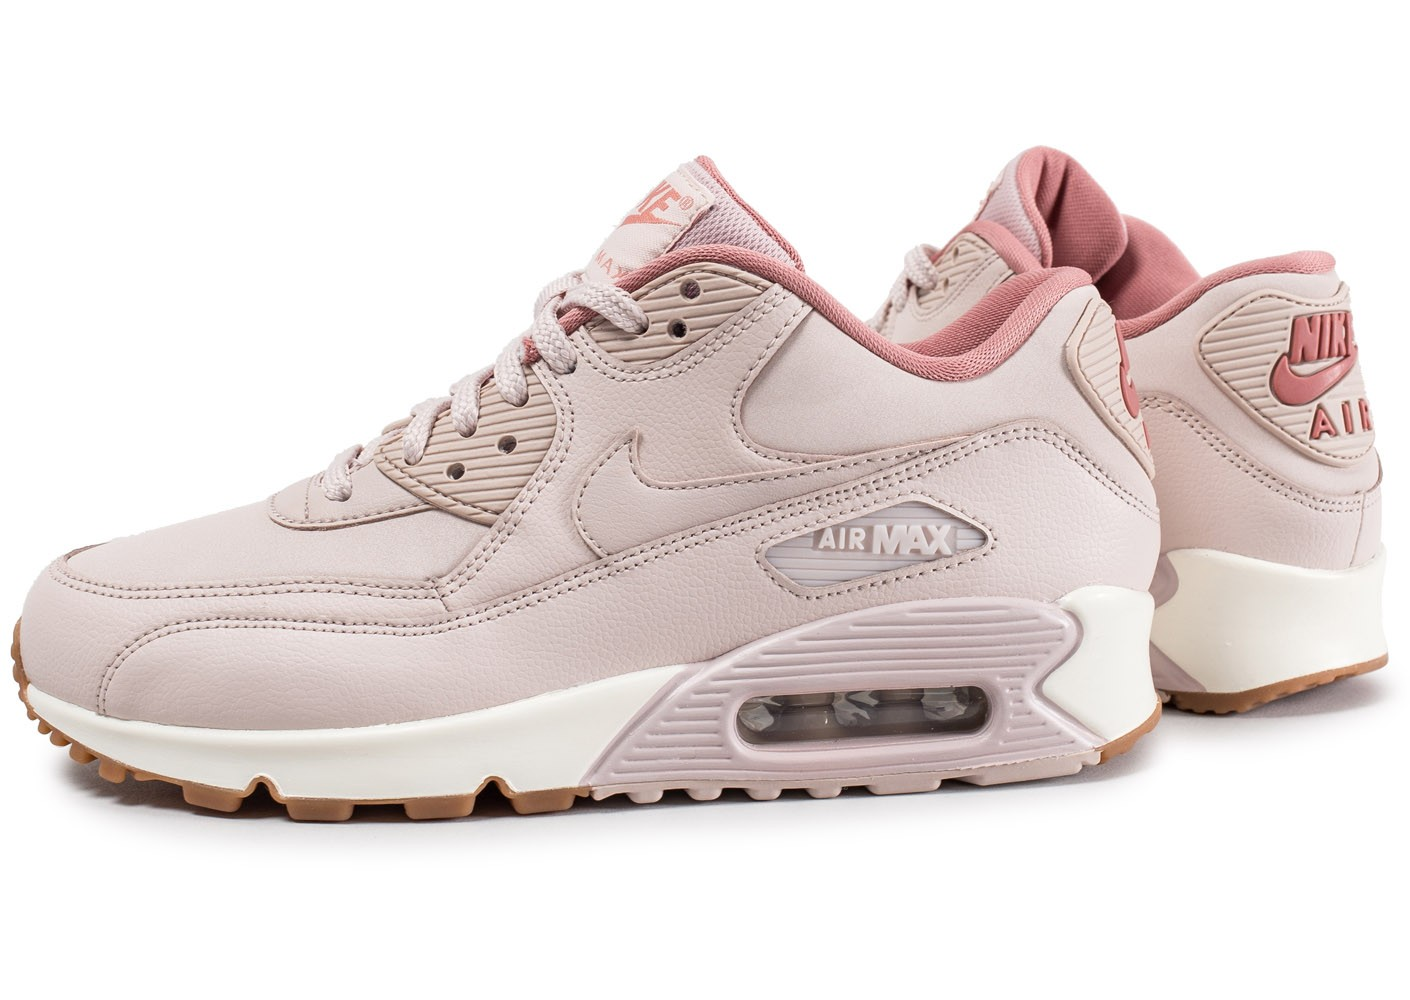 Nike Air Max 90 W Leather rose - Chaussures Baskets femme - Chausport